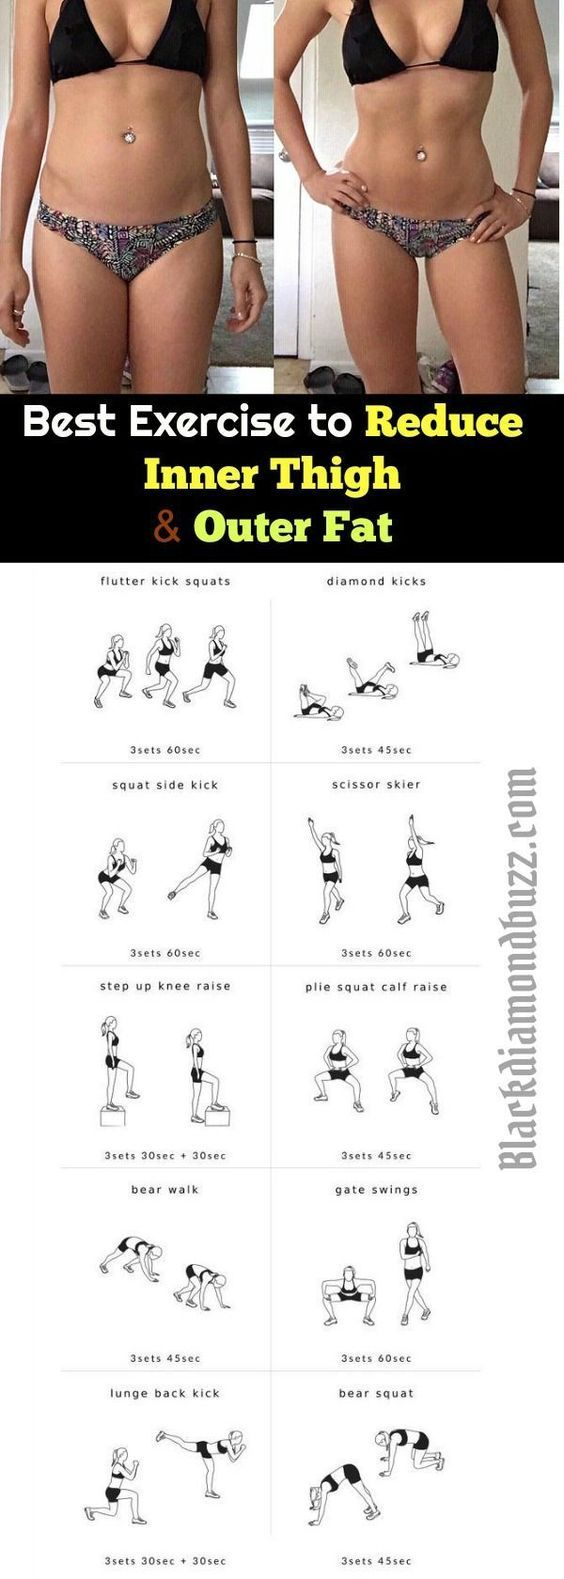 fitness-inspiration-best-exercise-to-reduce-inner-thigh-and-outer-fat-fast-in-a-week-in-the-exercis.jpg (600×1680)